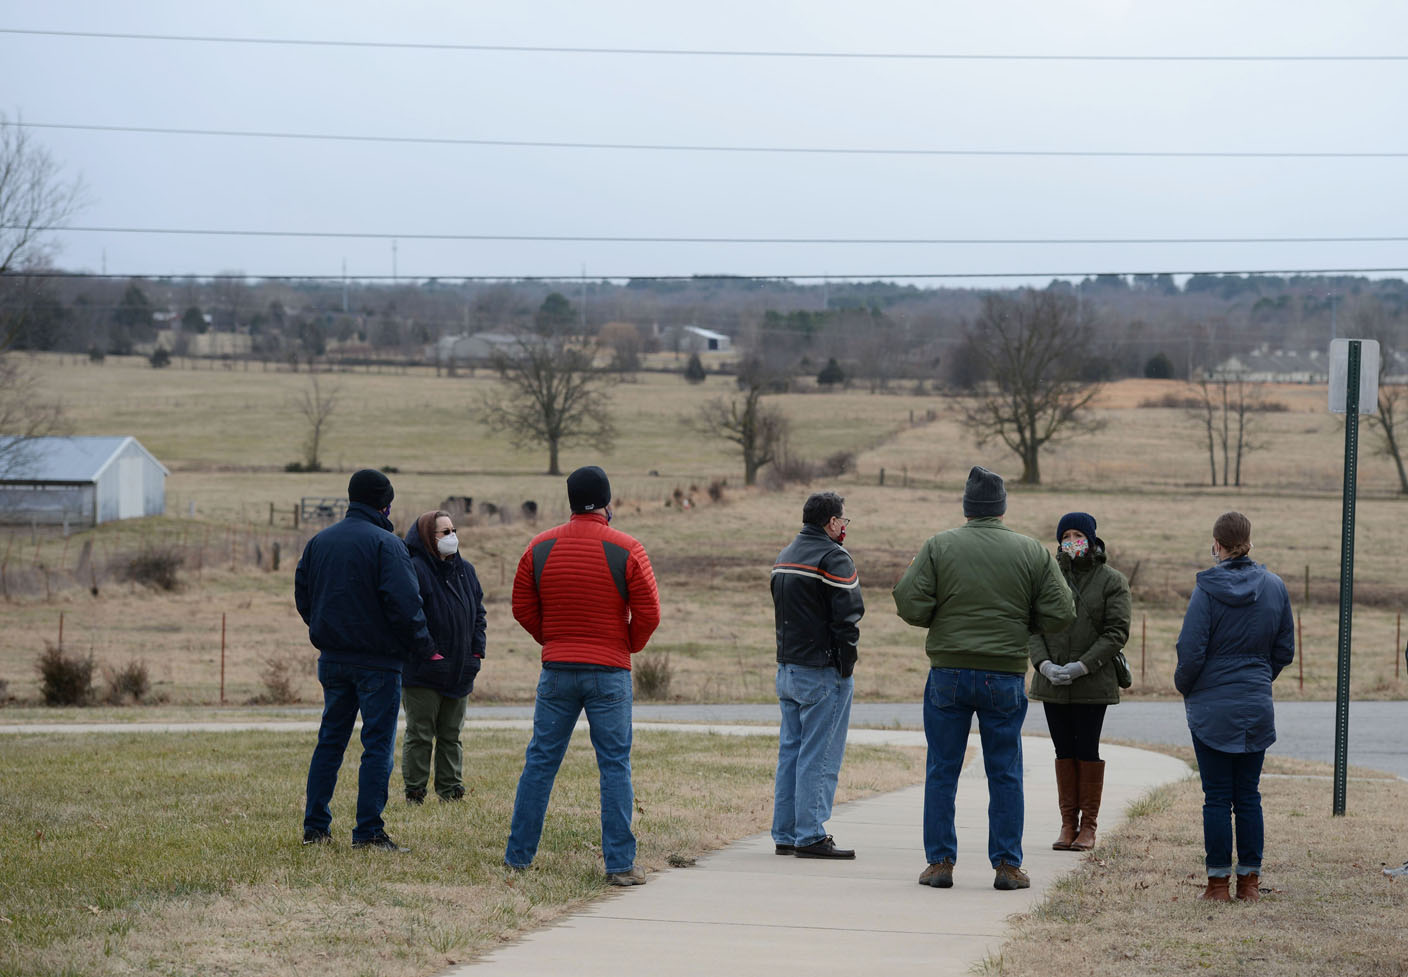 Fayetteville council tours land up for development near Zion, Crossover roads